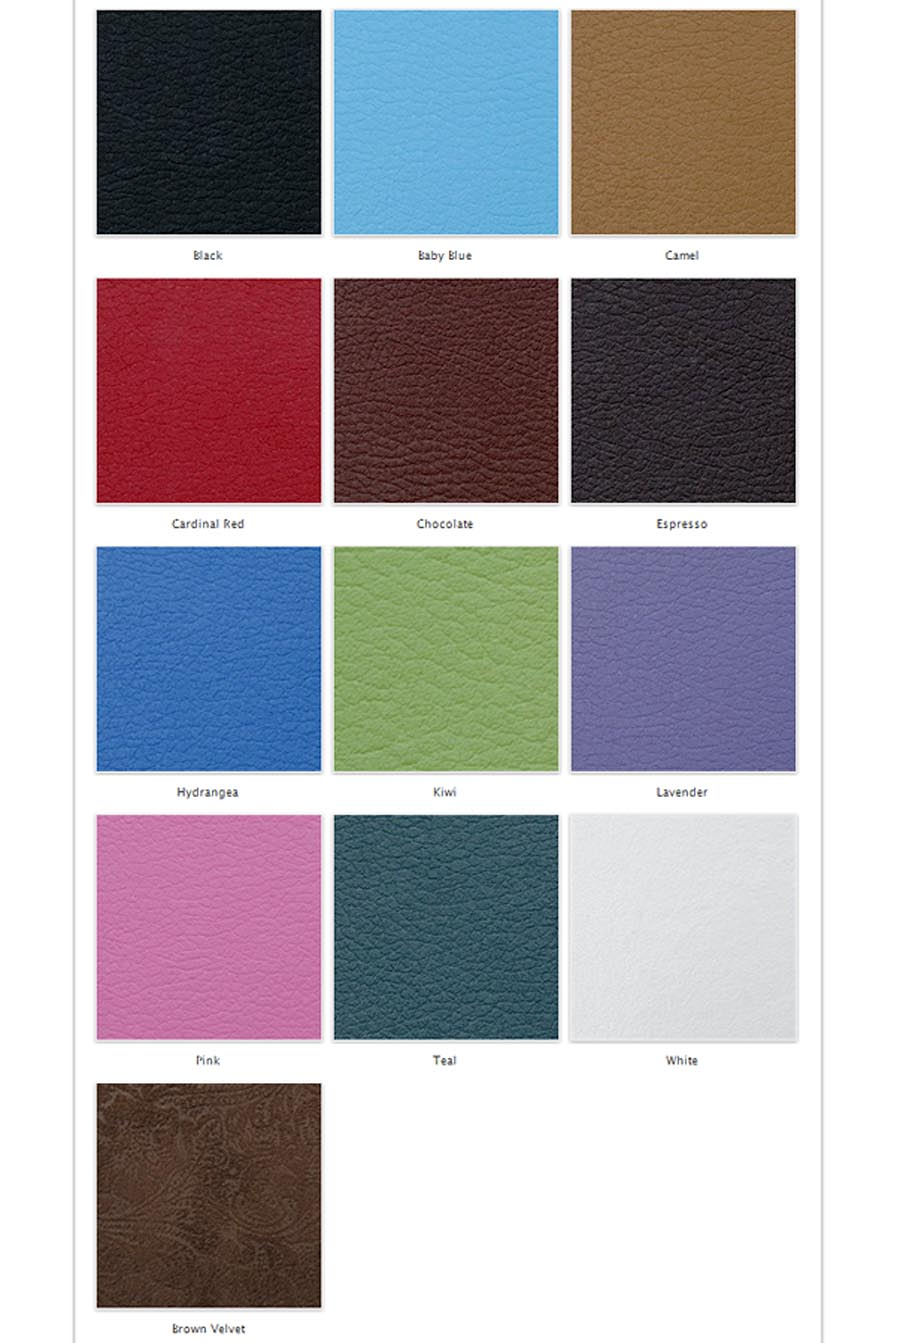 color swatches for flush mount albums